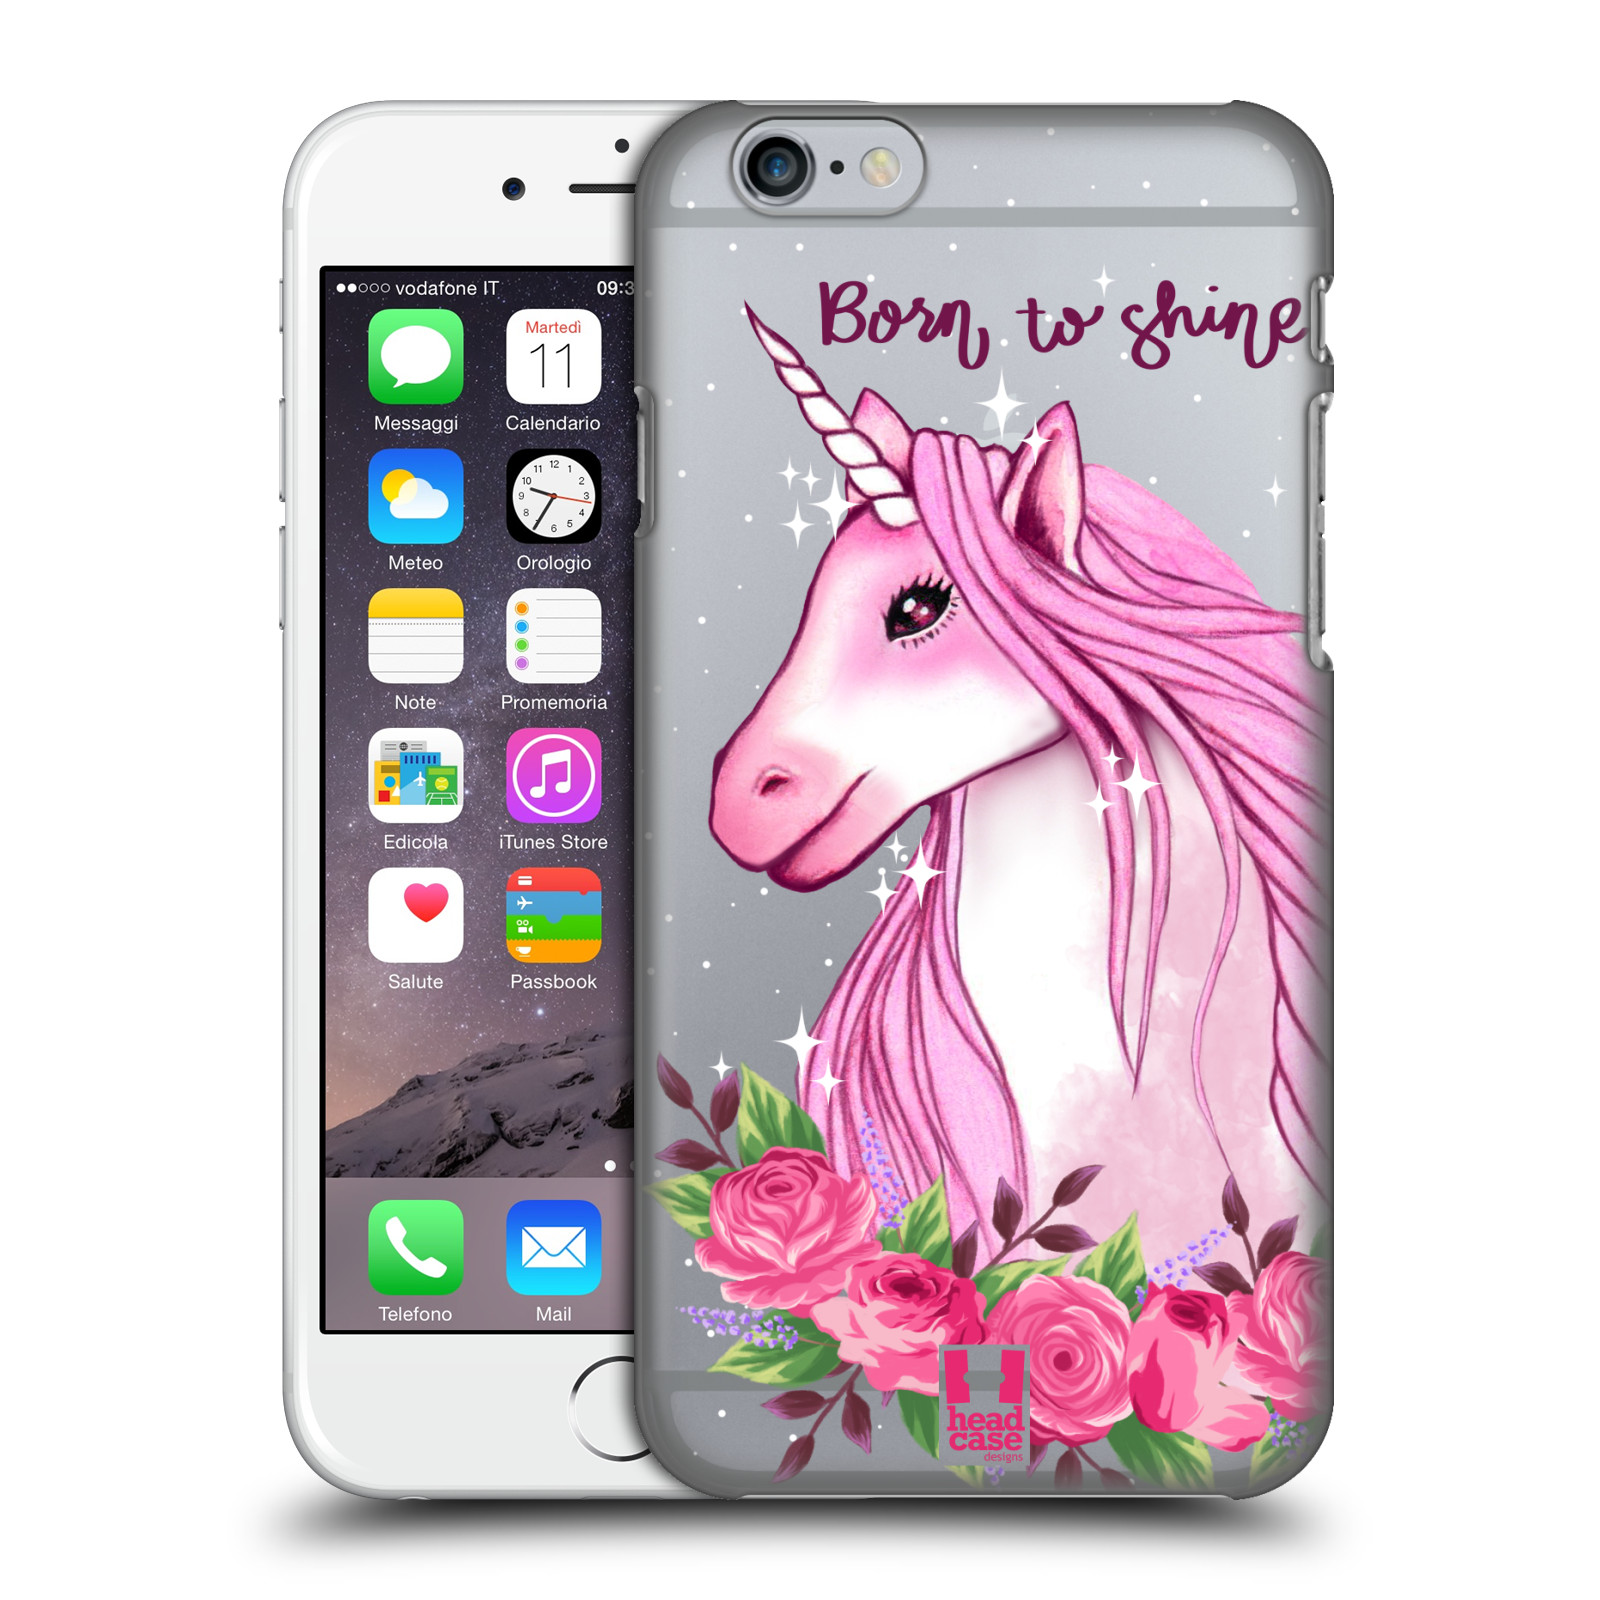 Plastové pouzdro na mobil Apple iPhone 6 - Head Case - Jednorožec - Born to shine